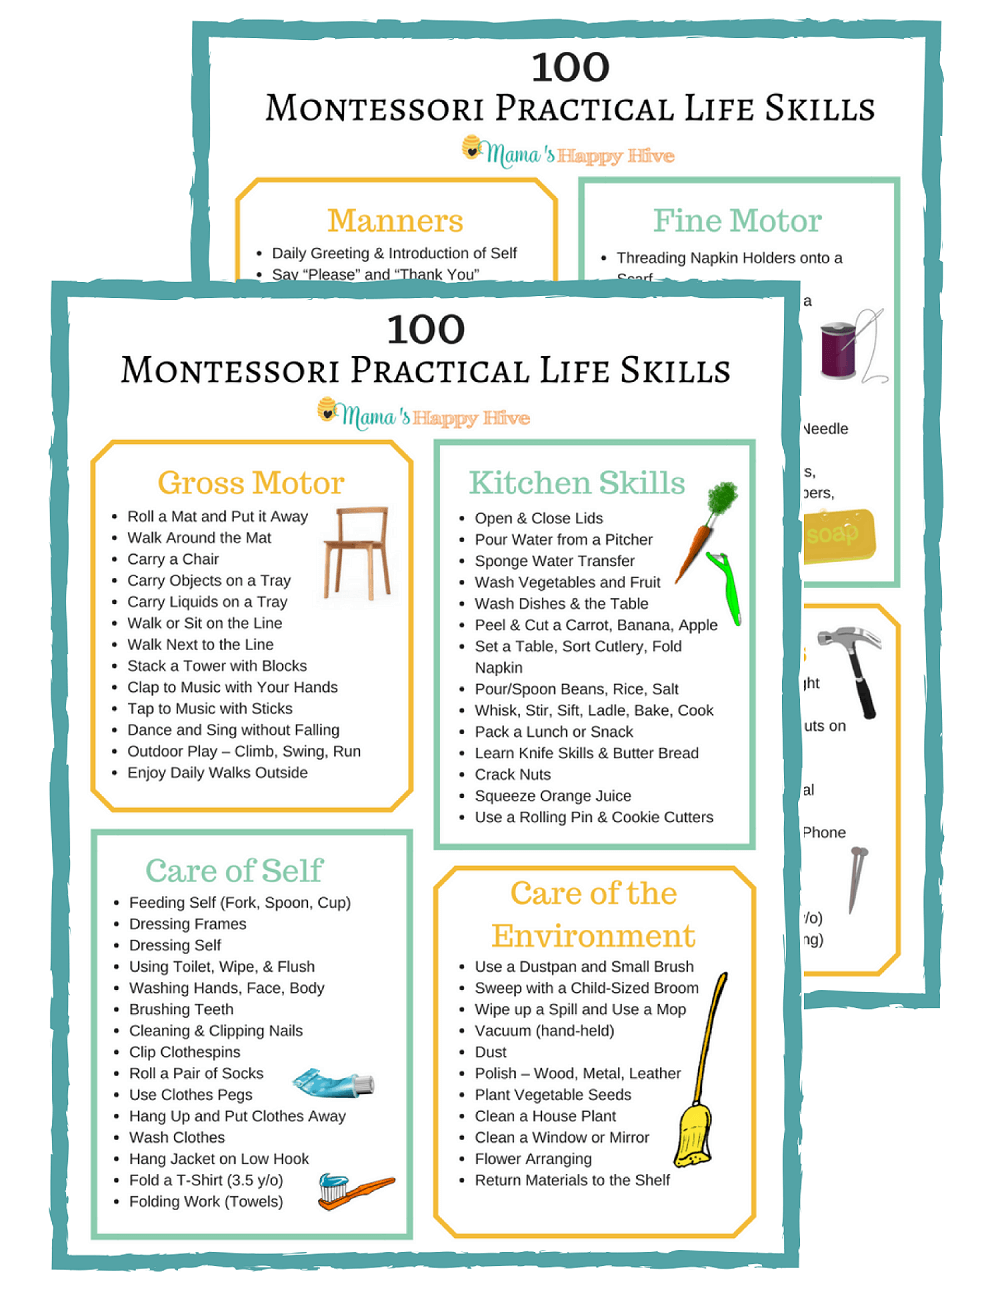 Skills List Amazing 100 Montessori Practical Life Skills List For Toddlers And .